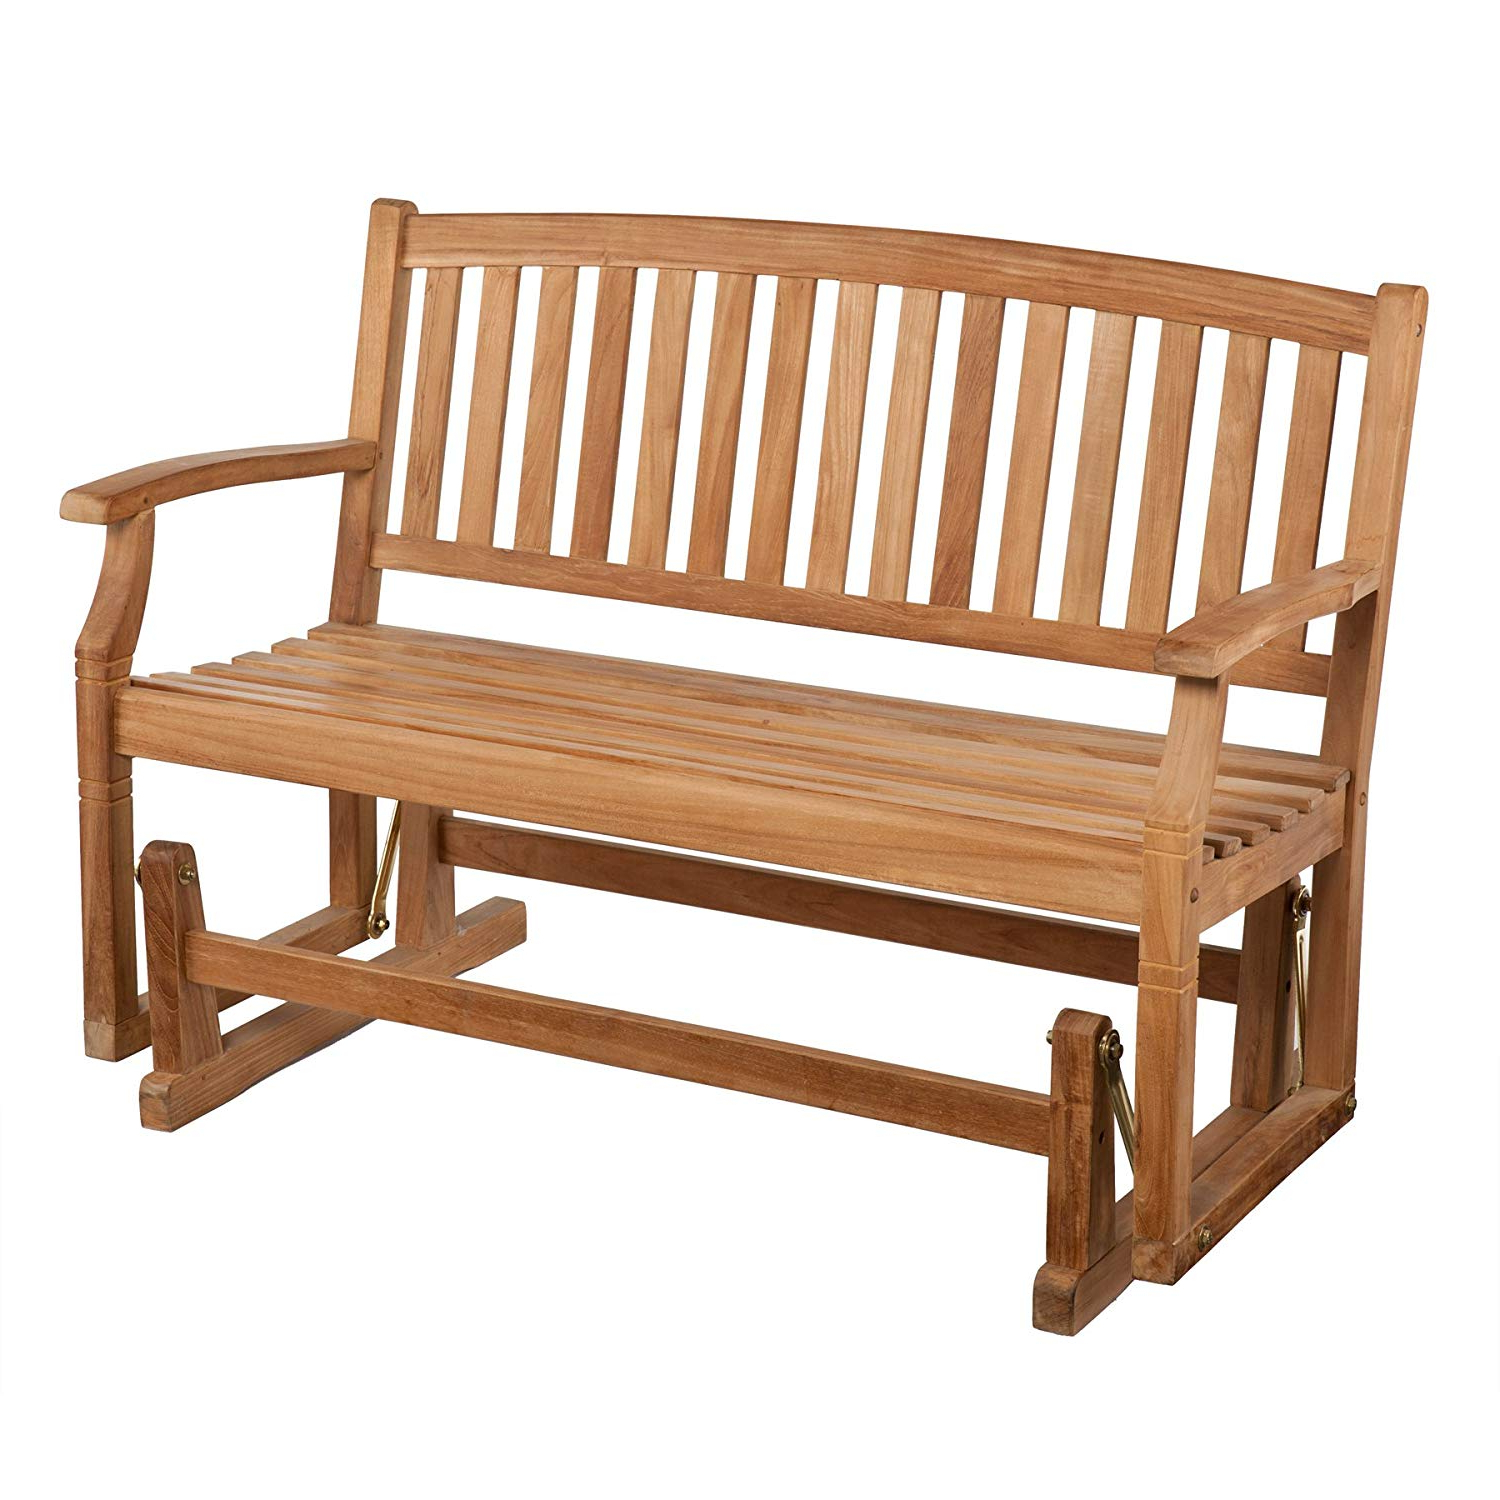 Teak Outdoor Glider Benches In Well Known Amazon : Sei Gideon Teak Patio Glider Bench : Tools (View 4 of 30)